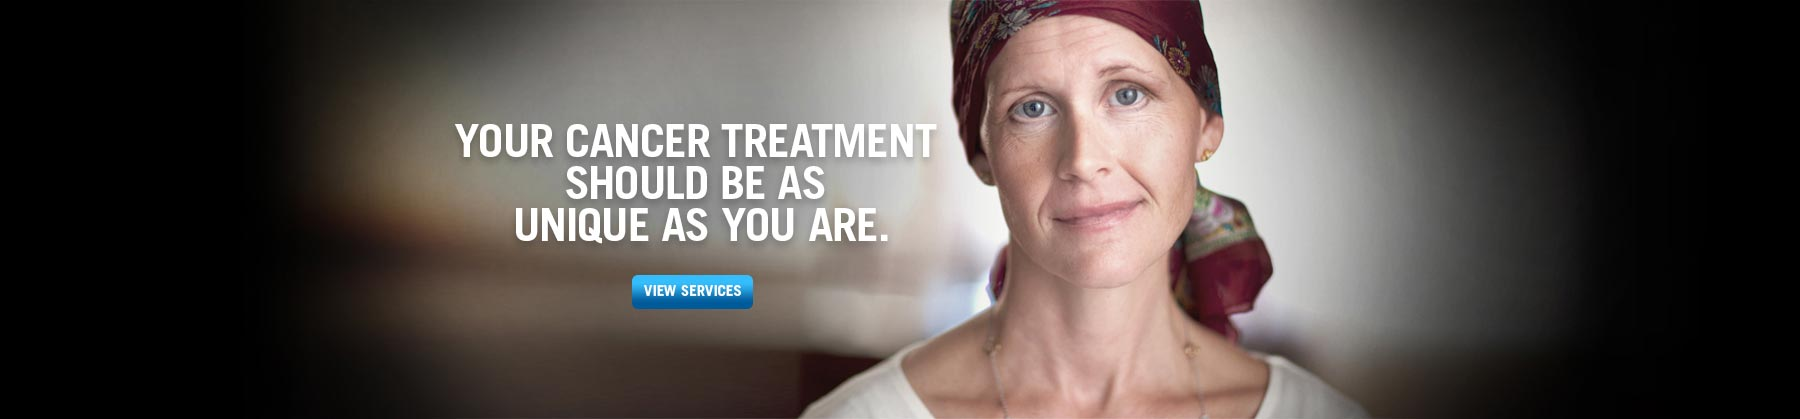 Your Cancer Treatment Should be as Unique as you are